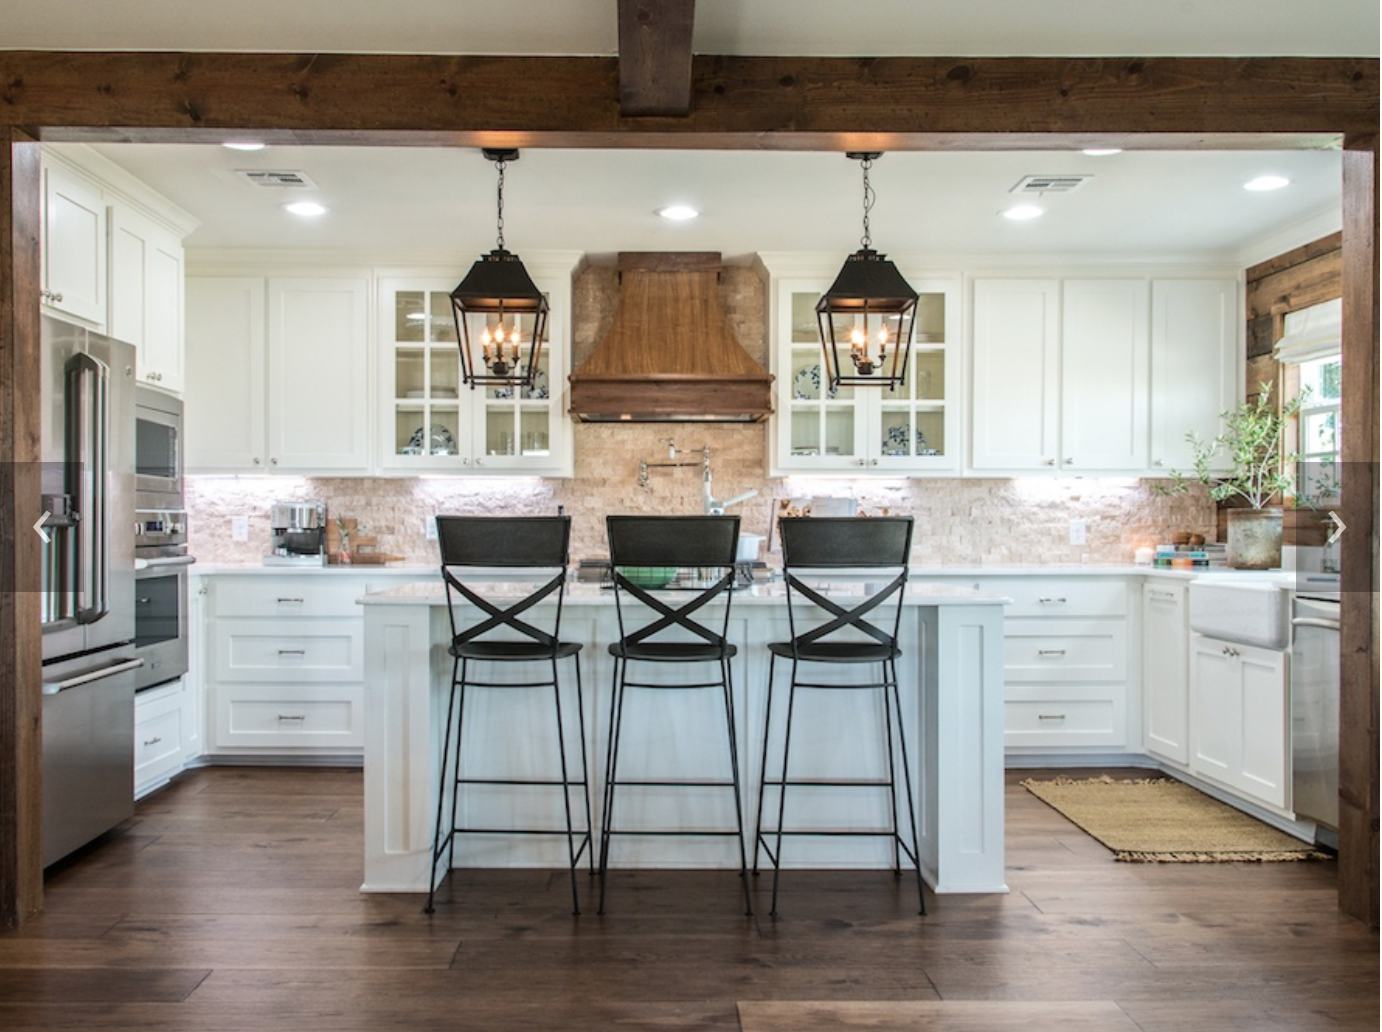 Fixer upper kitchen island pictures - Hgtv Fixer Upper Season 4 Episode 4